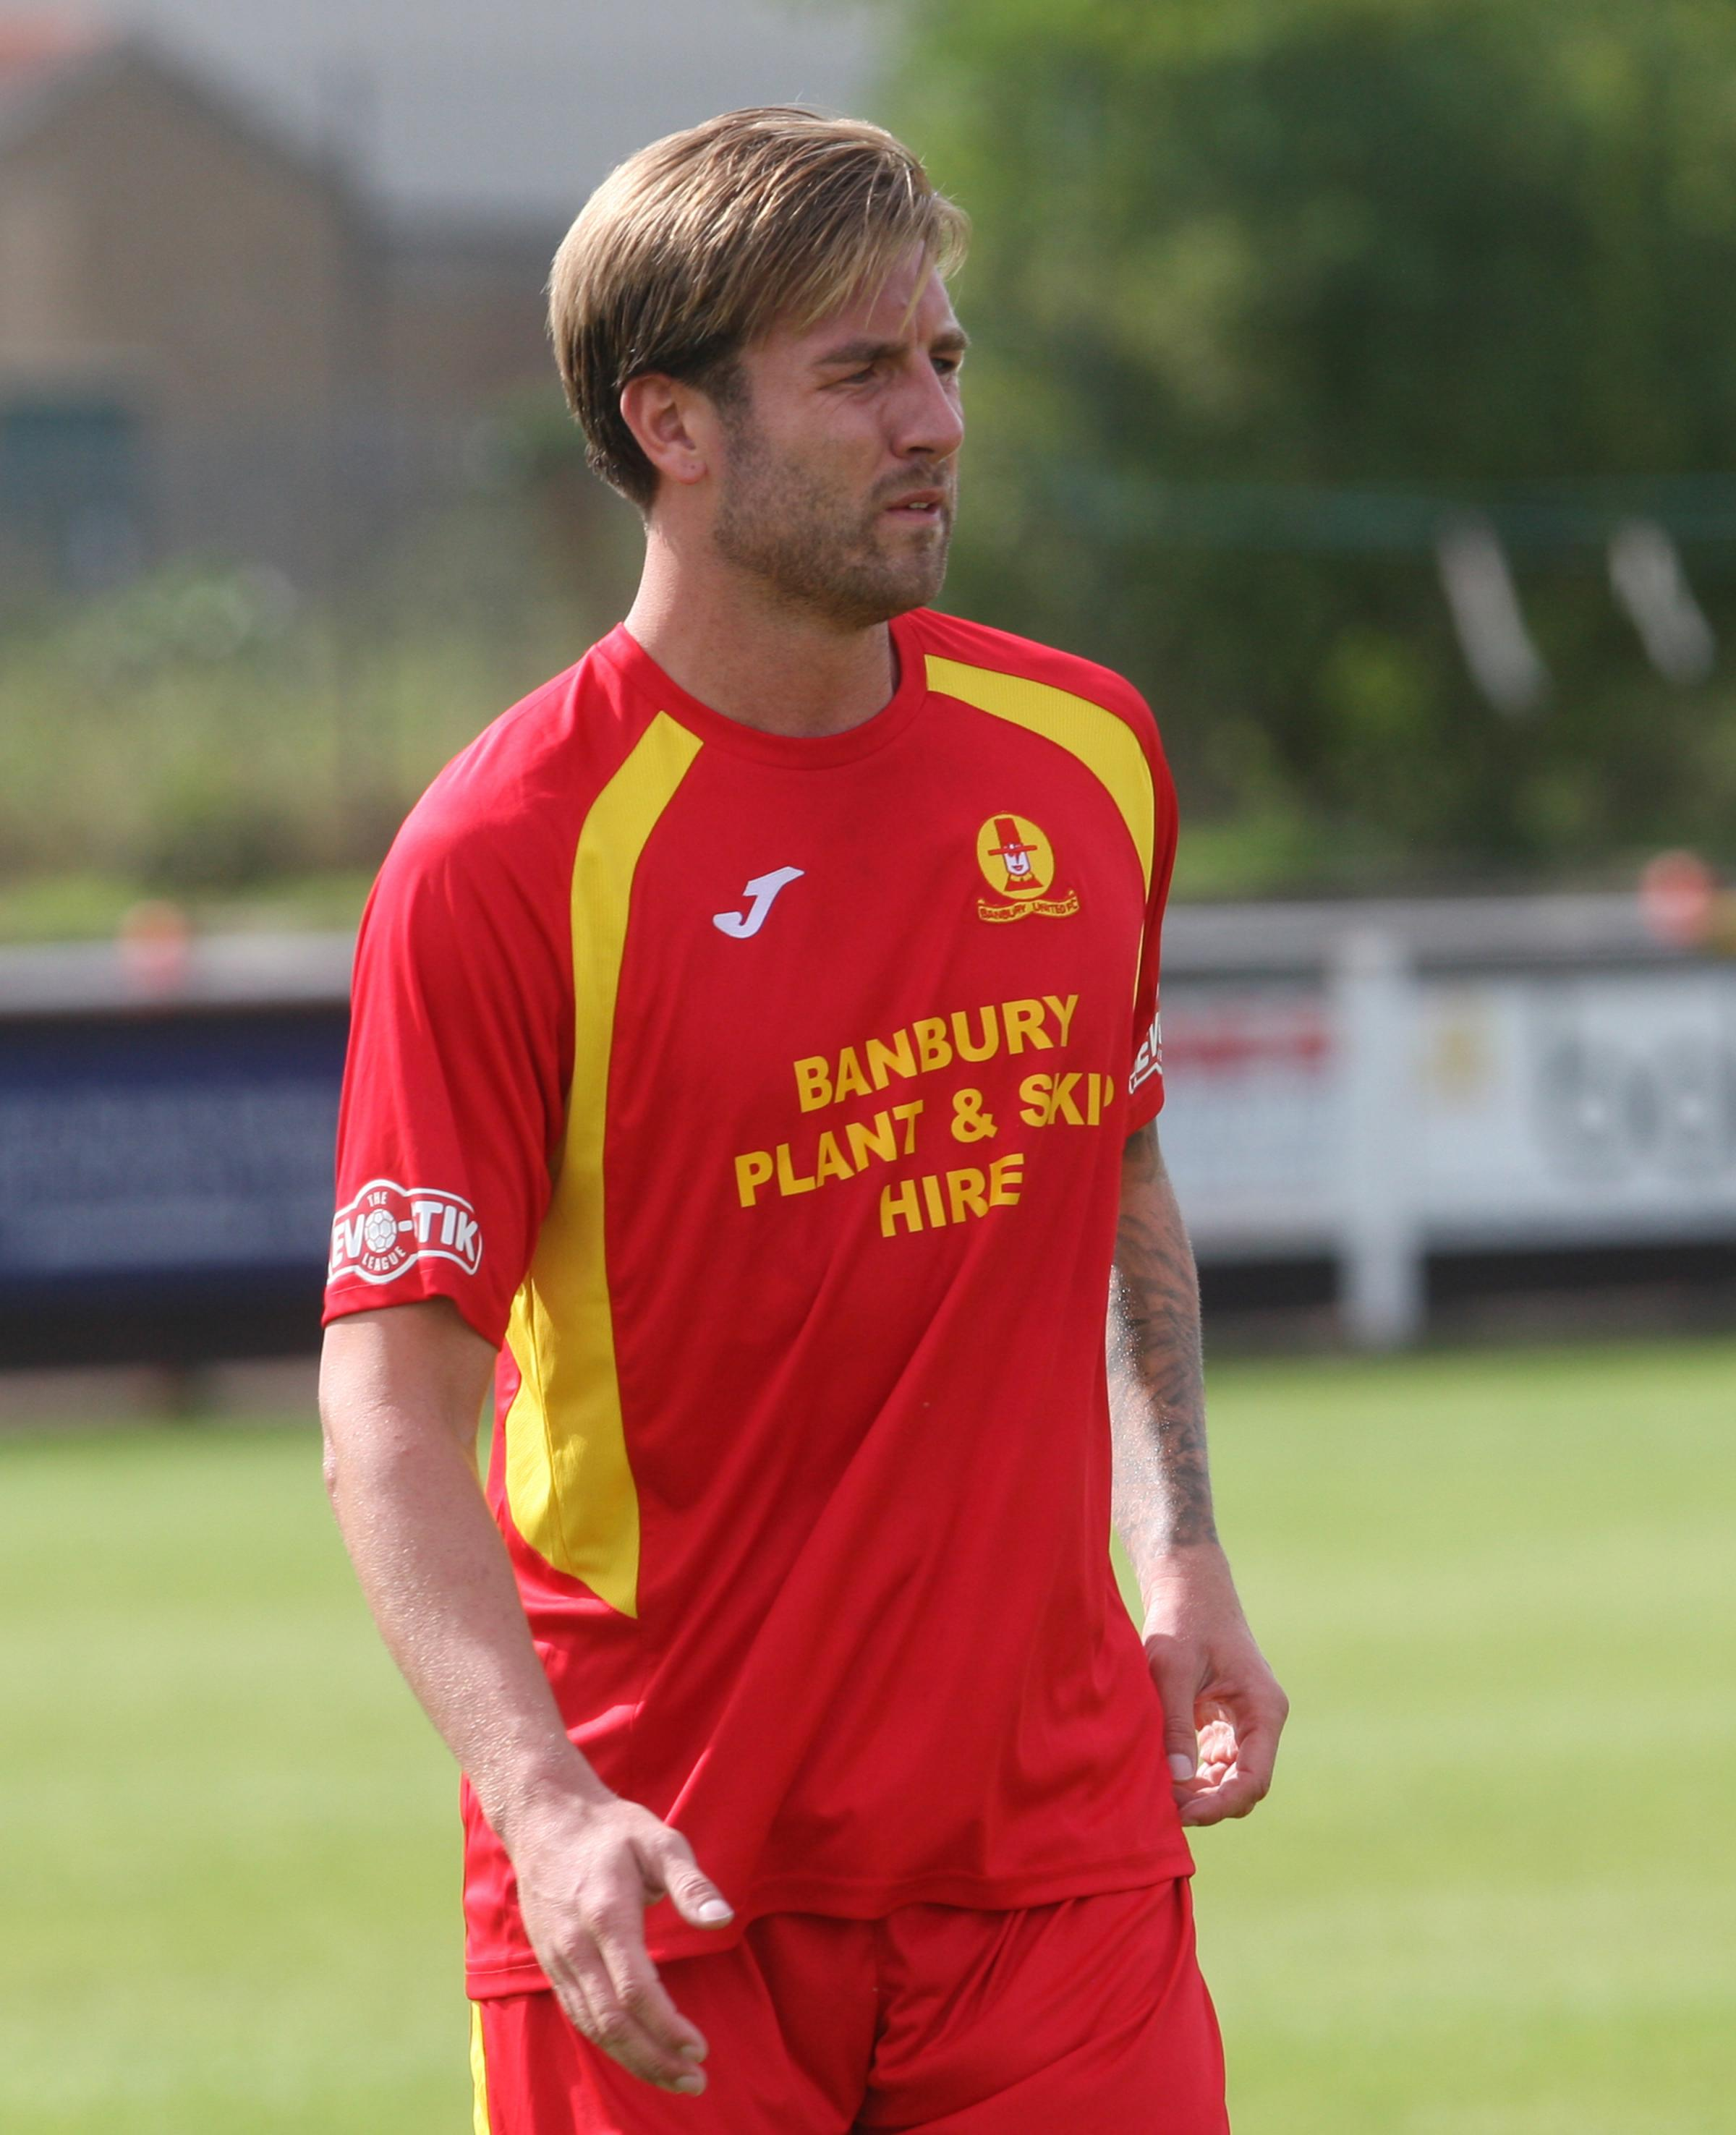 Conor McDonagh has been released by Banbury United